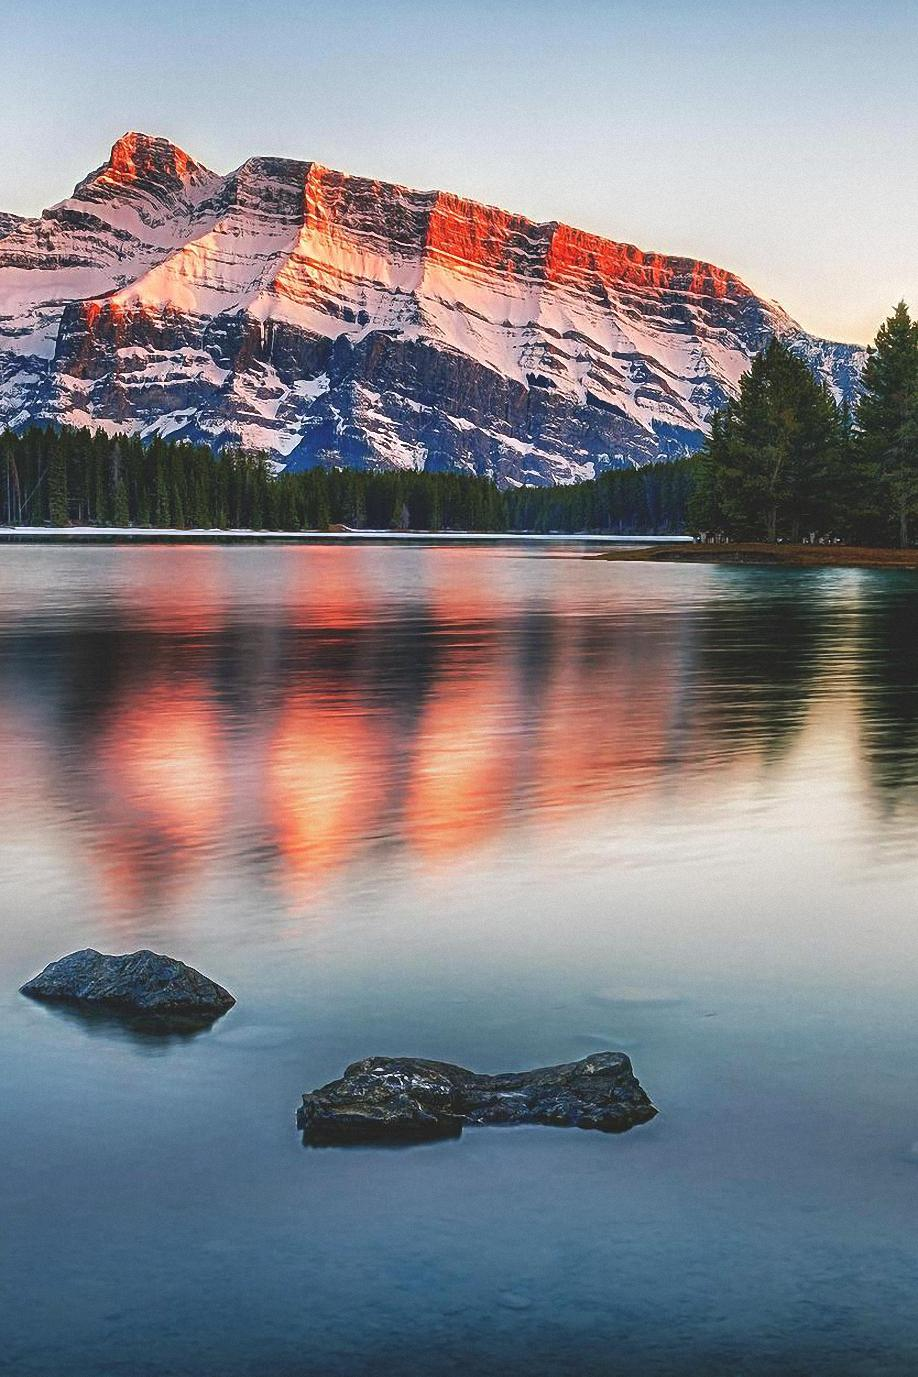 Must see Wallpaper Mobile Landscape - mountain-lake-sunset-snow-forest-wallpaper  Trends_77688.jpg